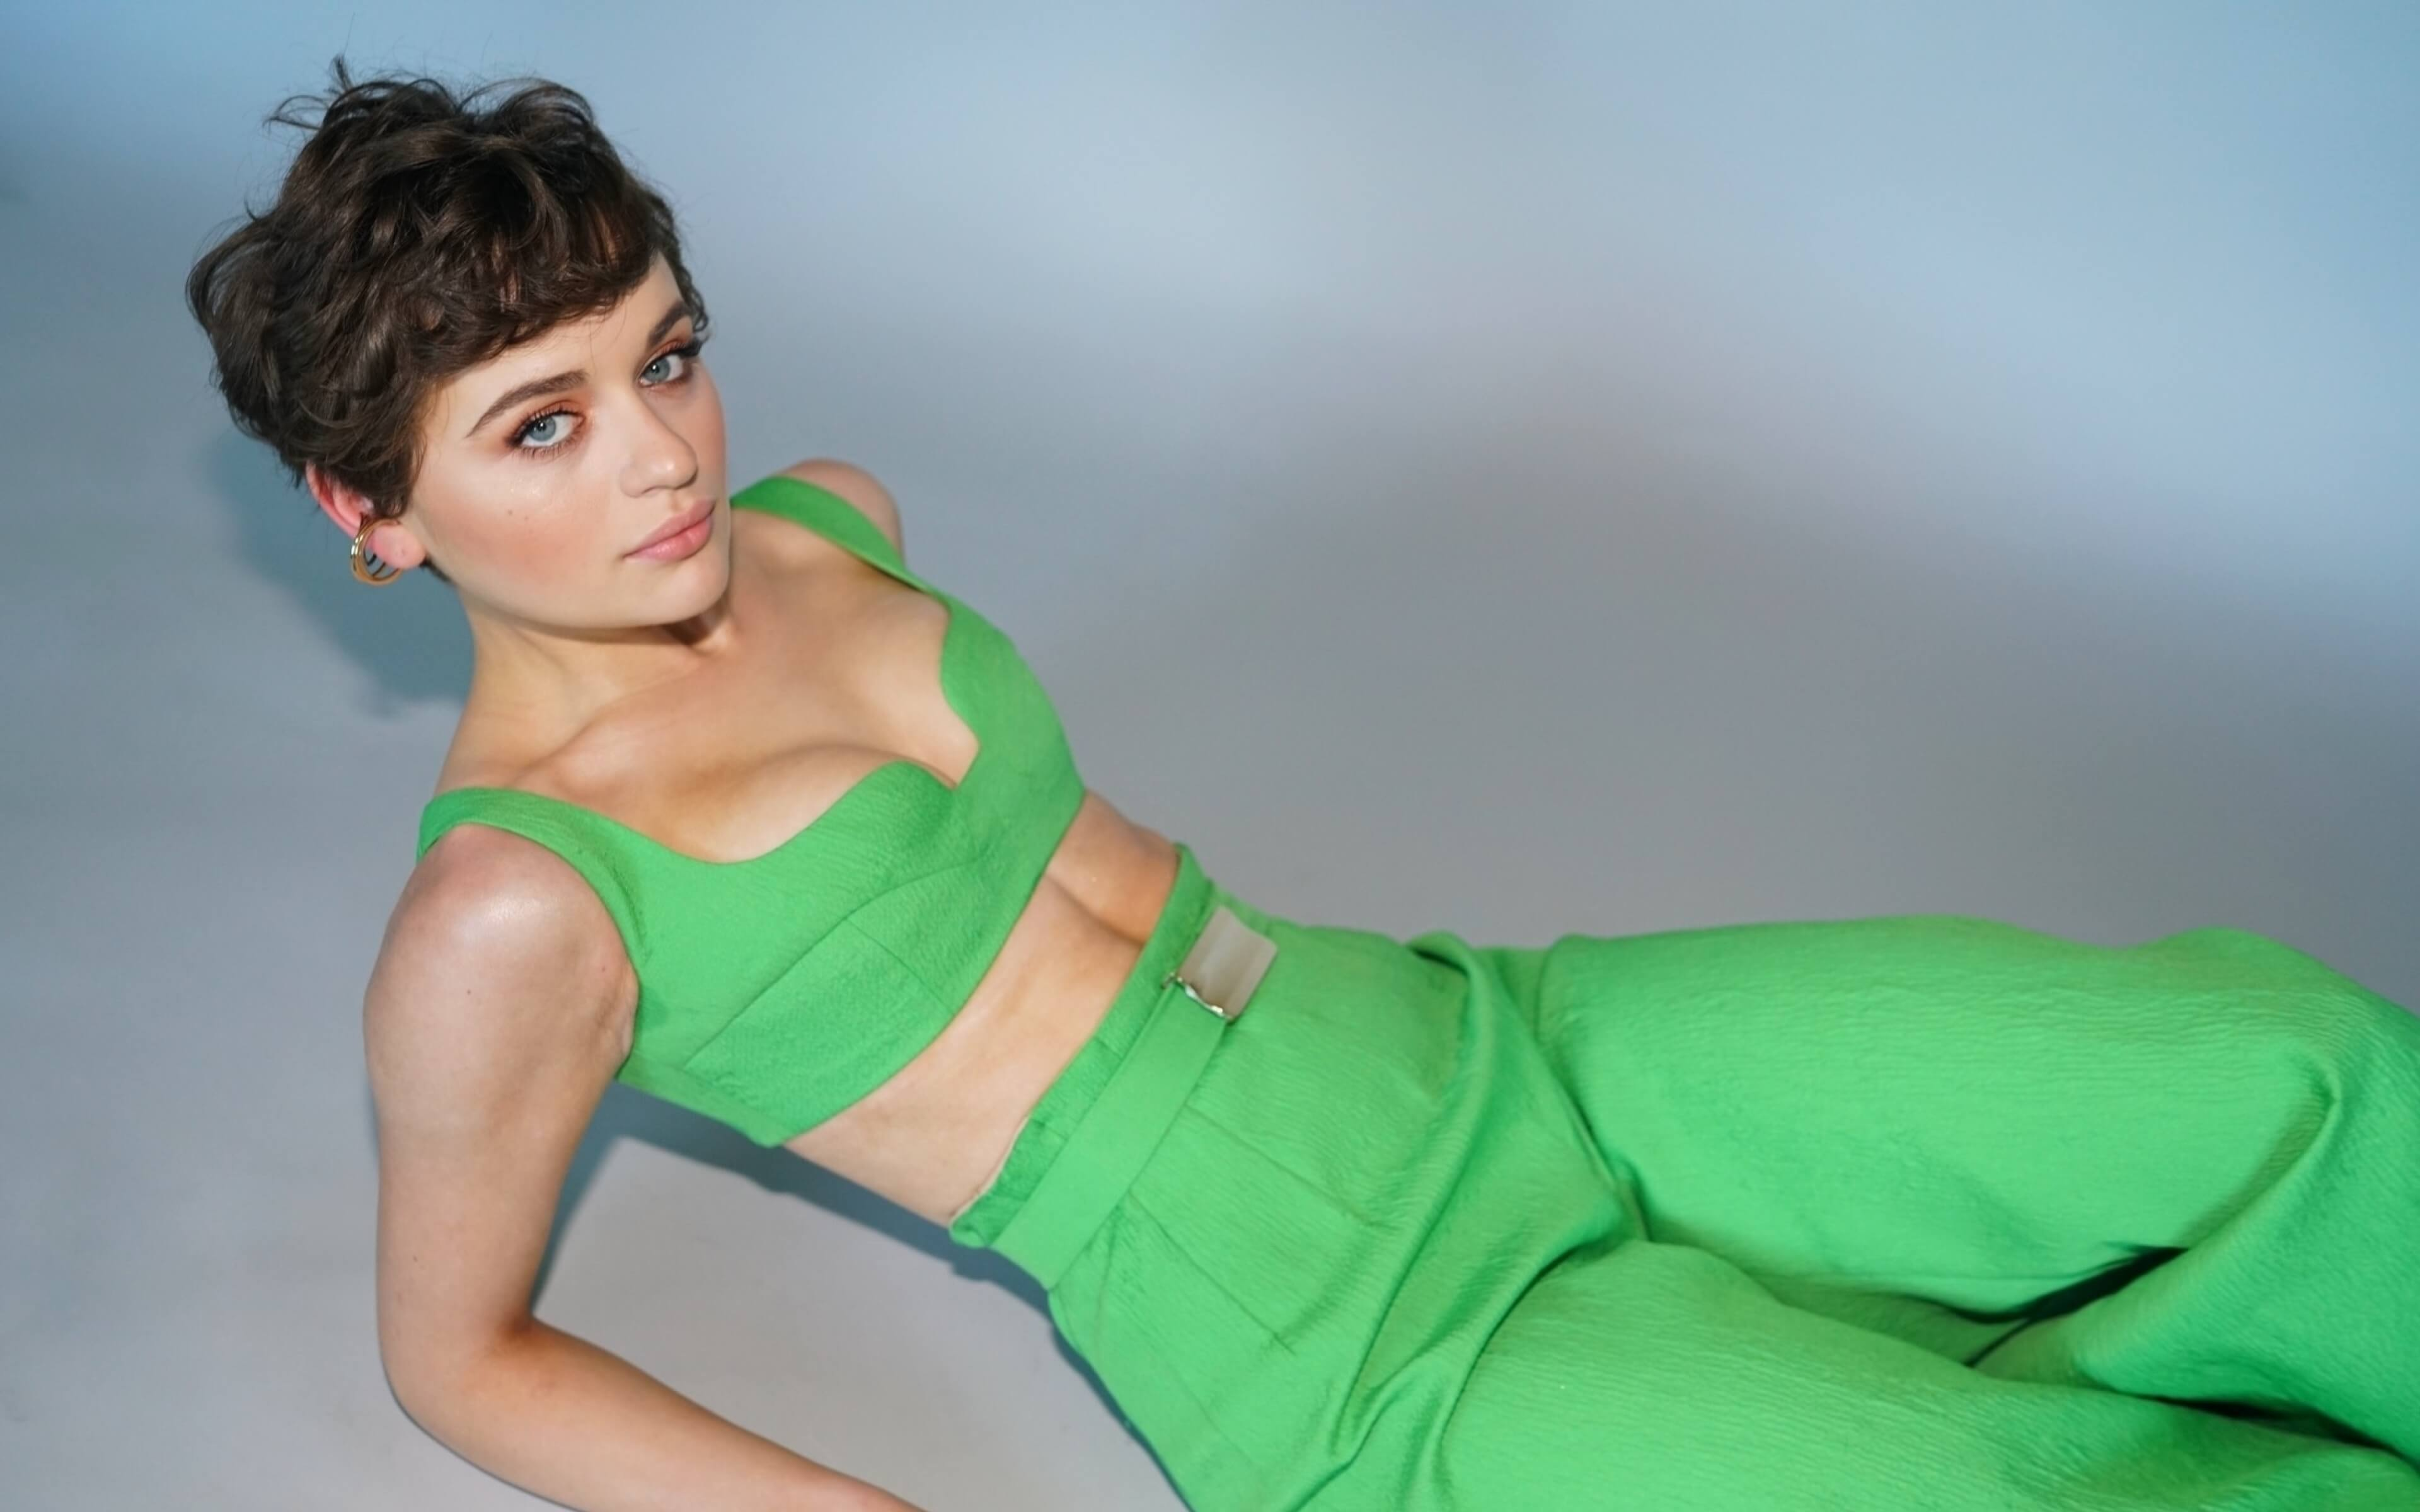 hd joey king green outfit wallpaper 71658